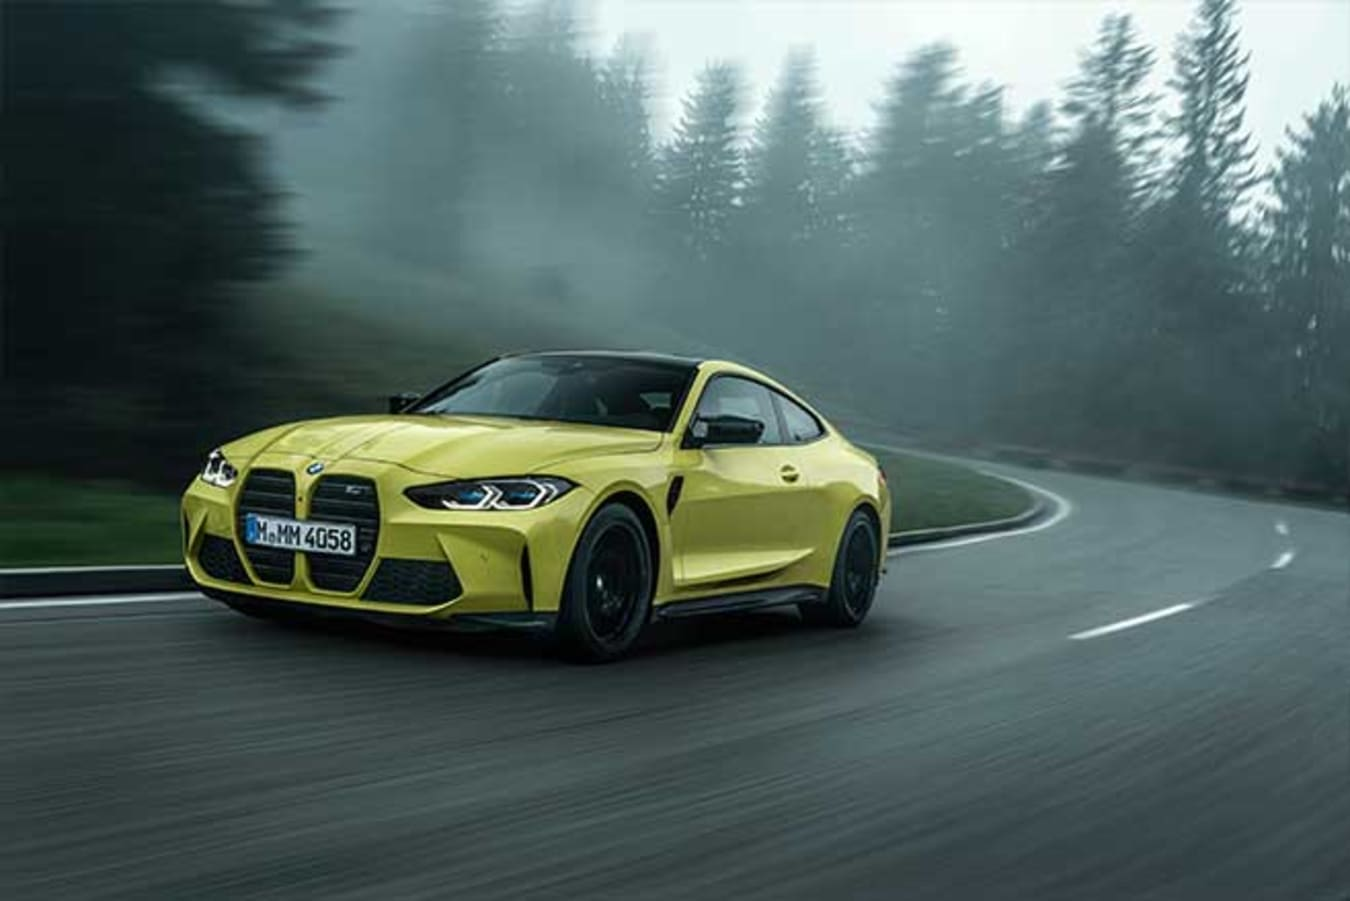 2021 BMW M4 Competition driving on a mountain road.